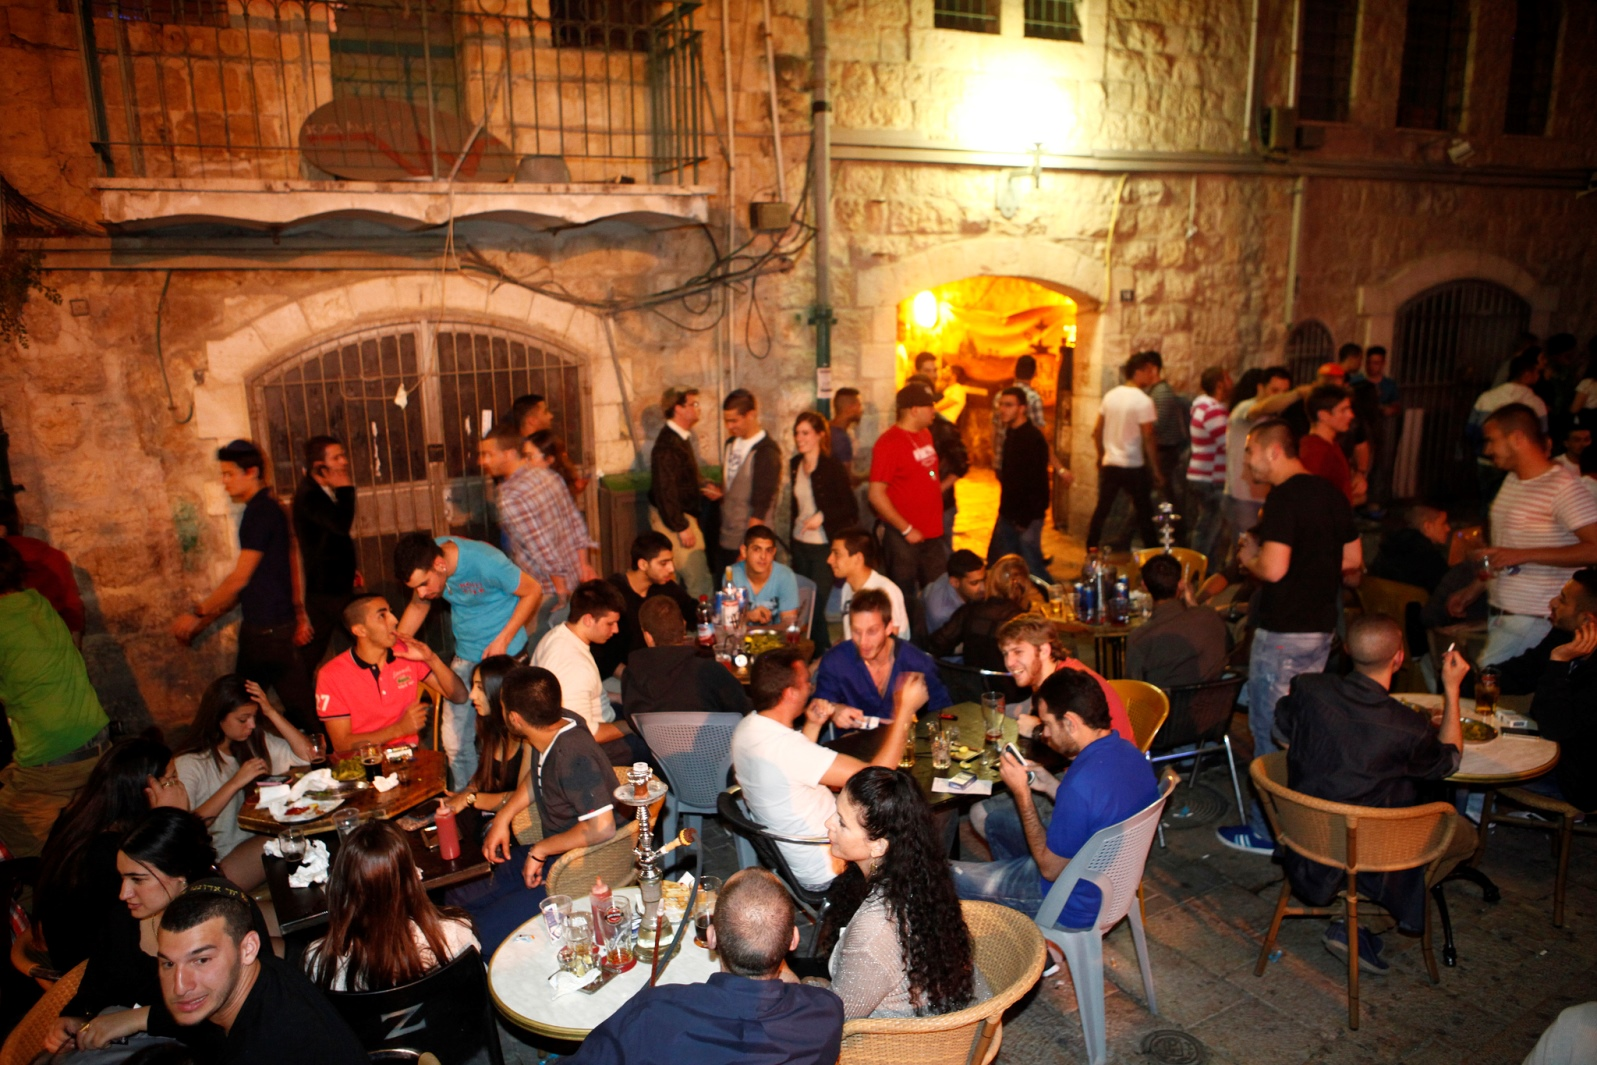 Jerusalem nightlife. Photo by Ariel Jerozolimski